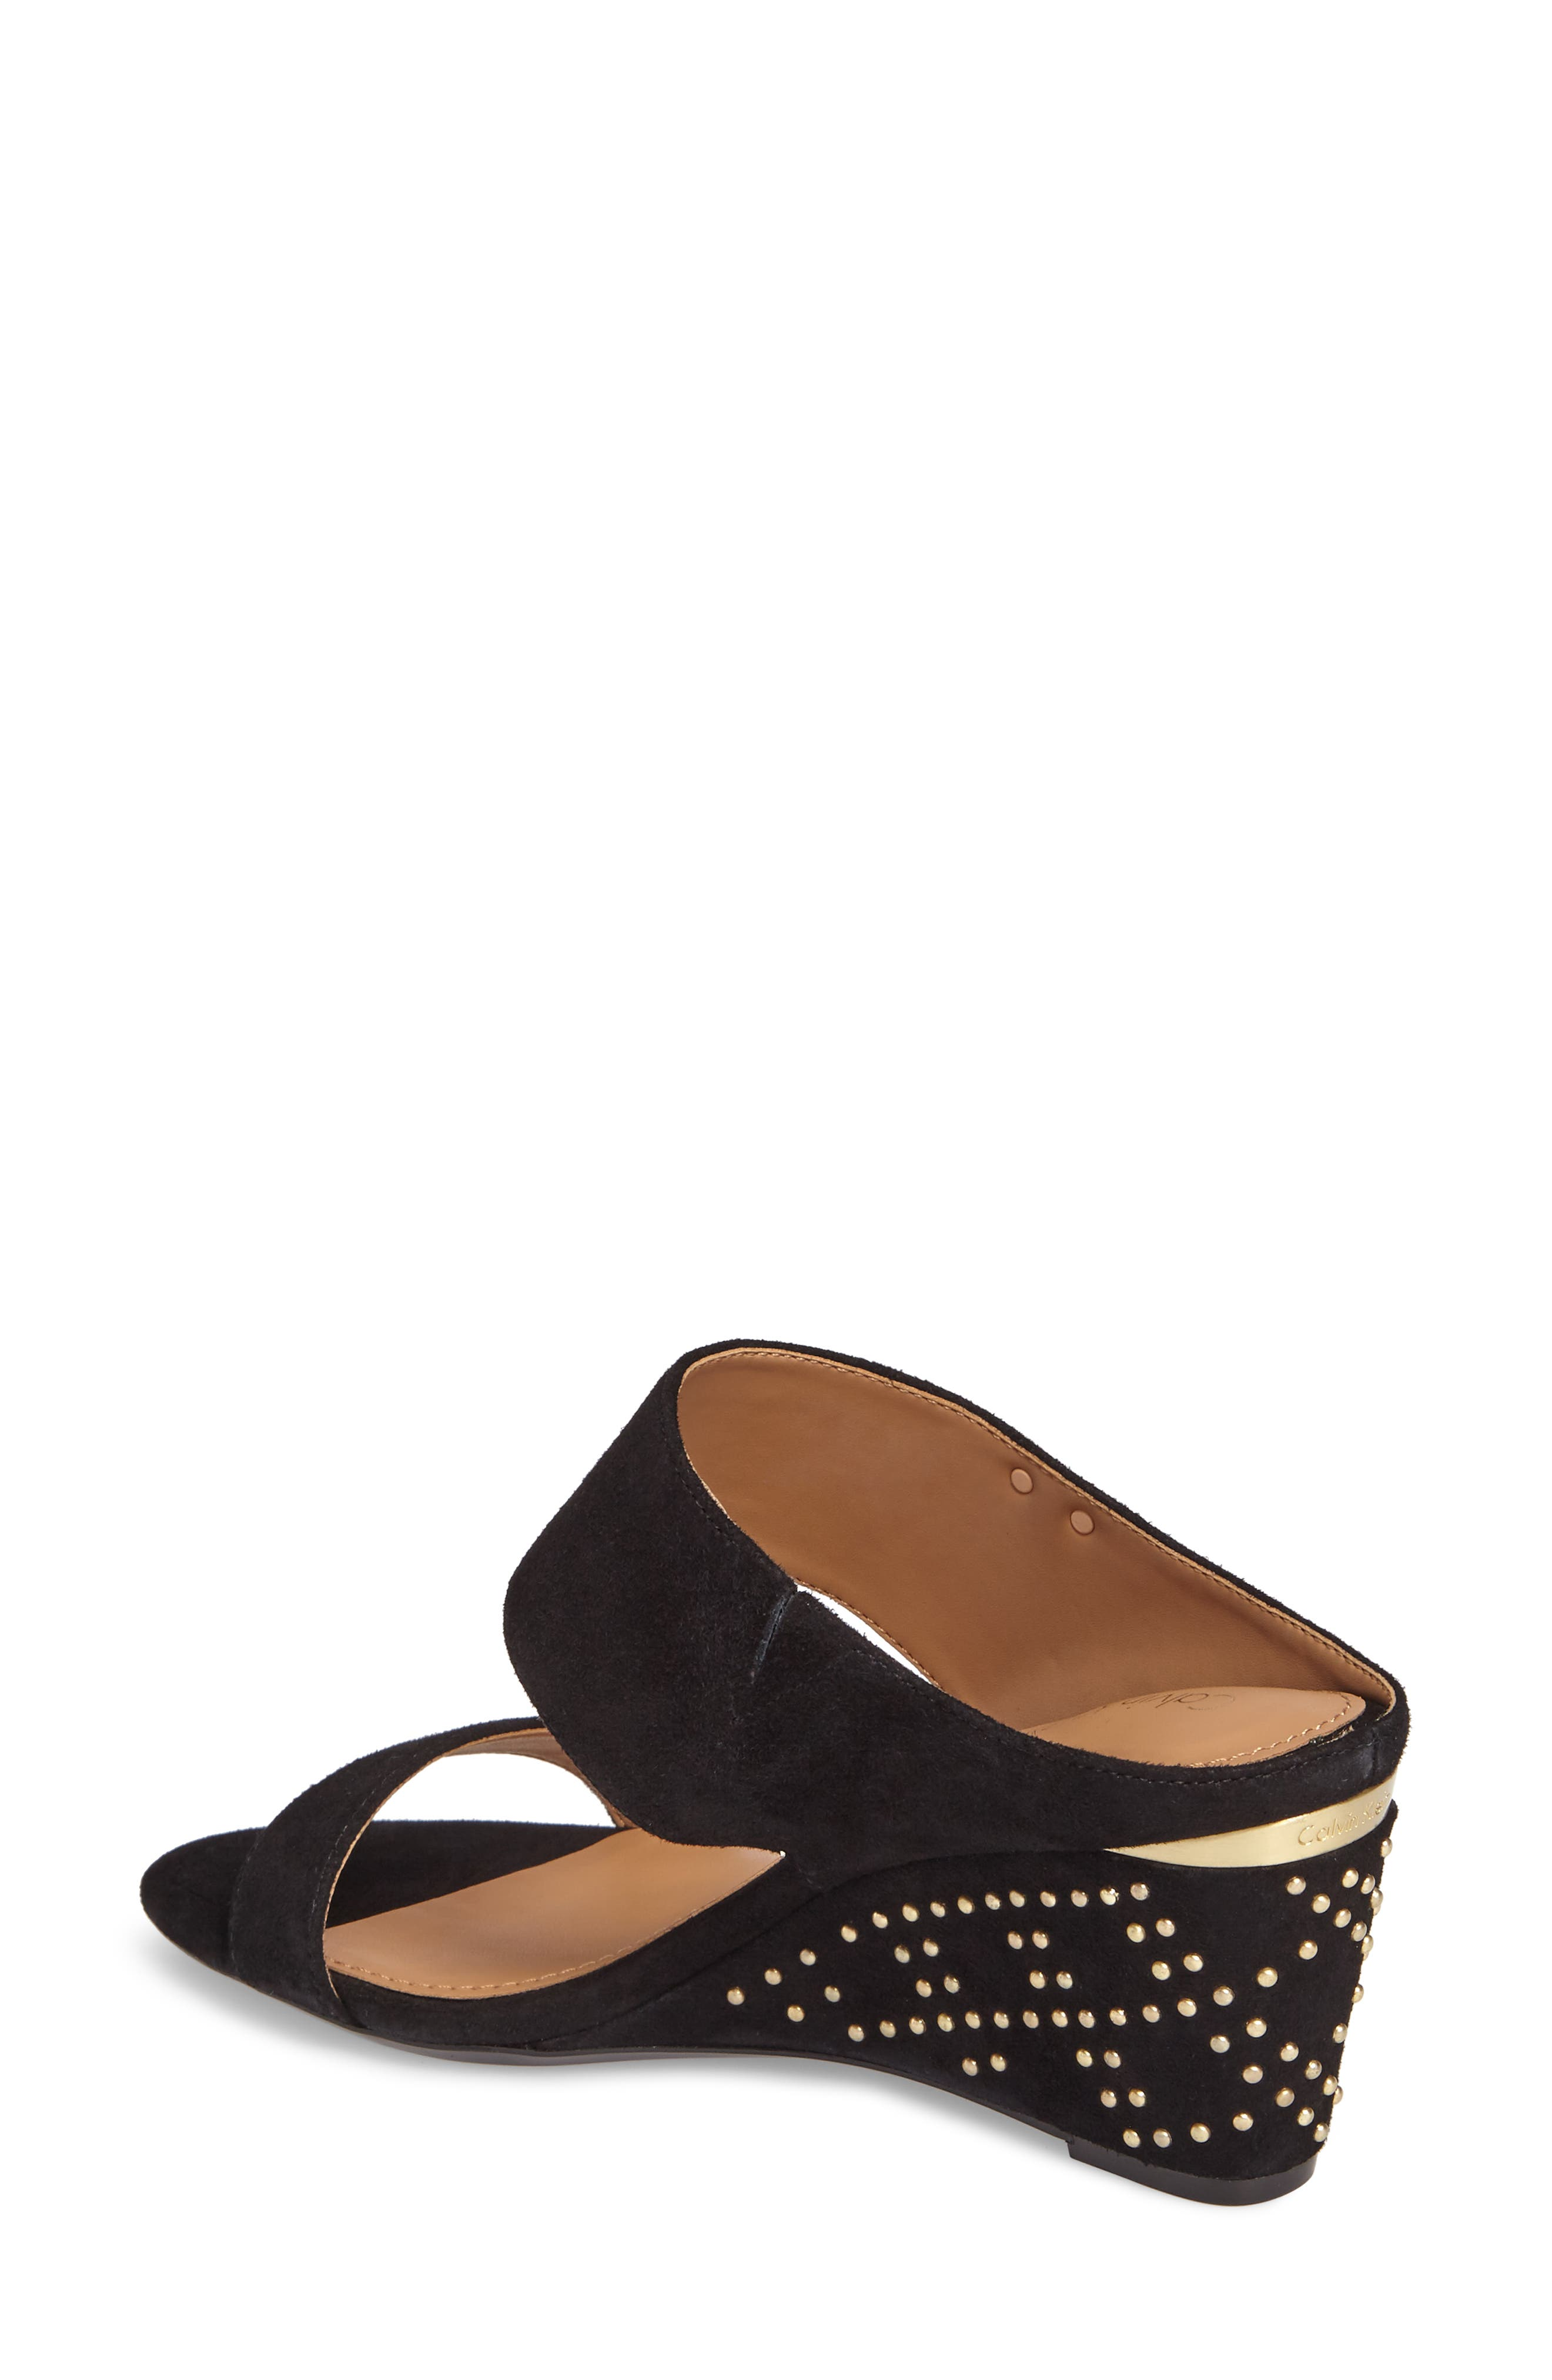 Phyllis Studded Wedge Sandal,                             Alternate thumbnail 2, color,                             002